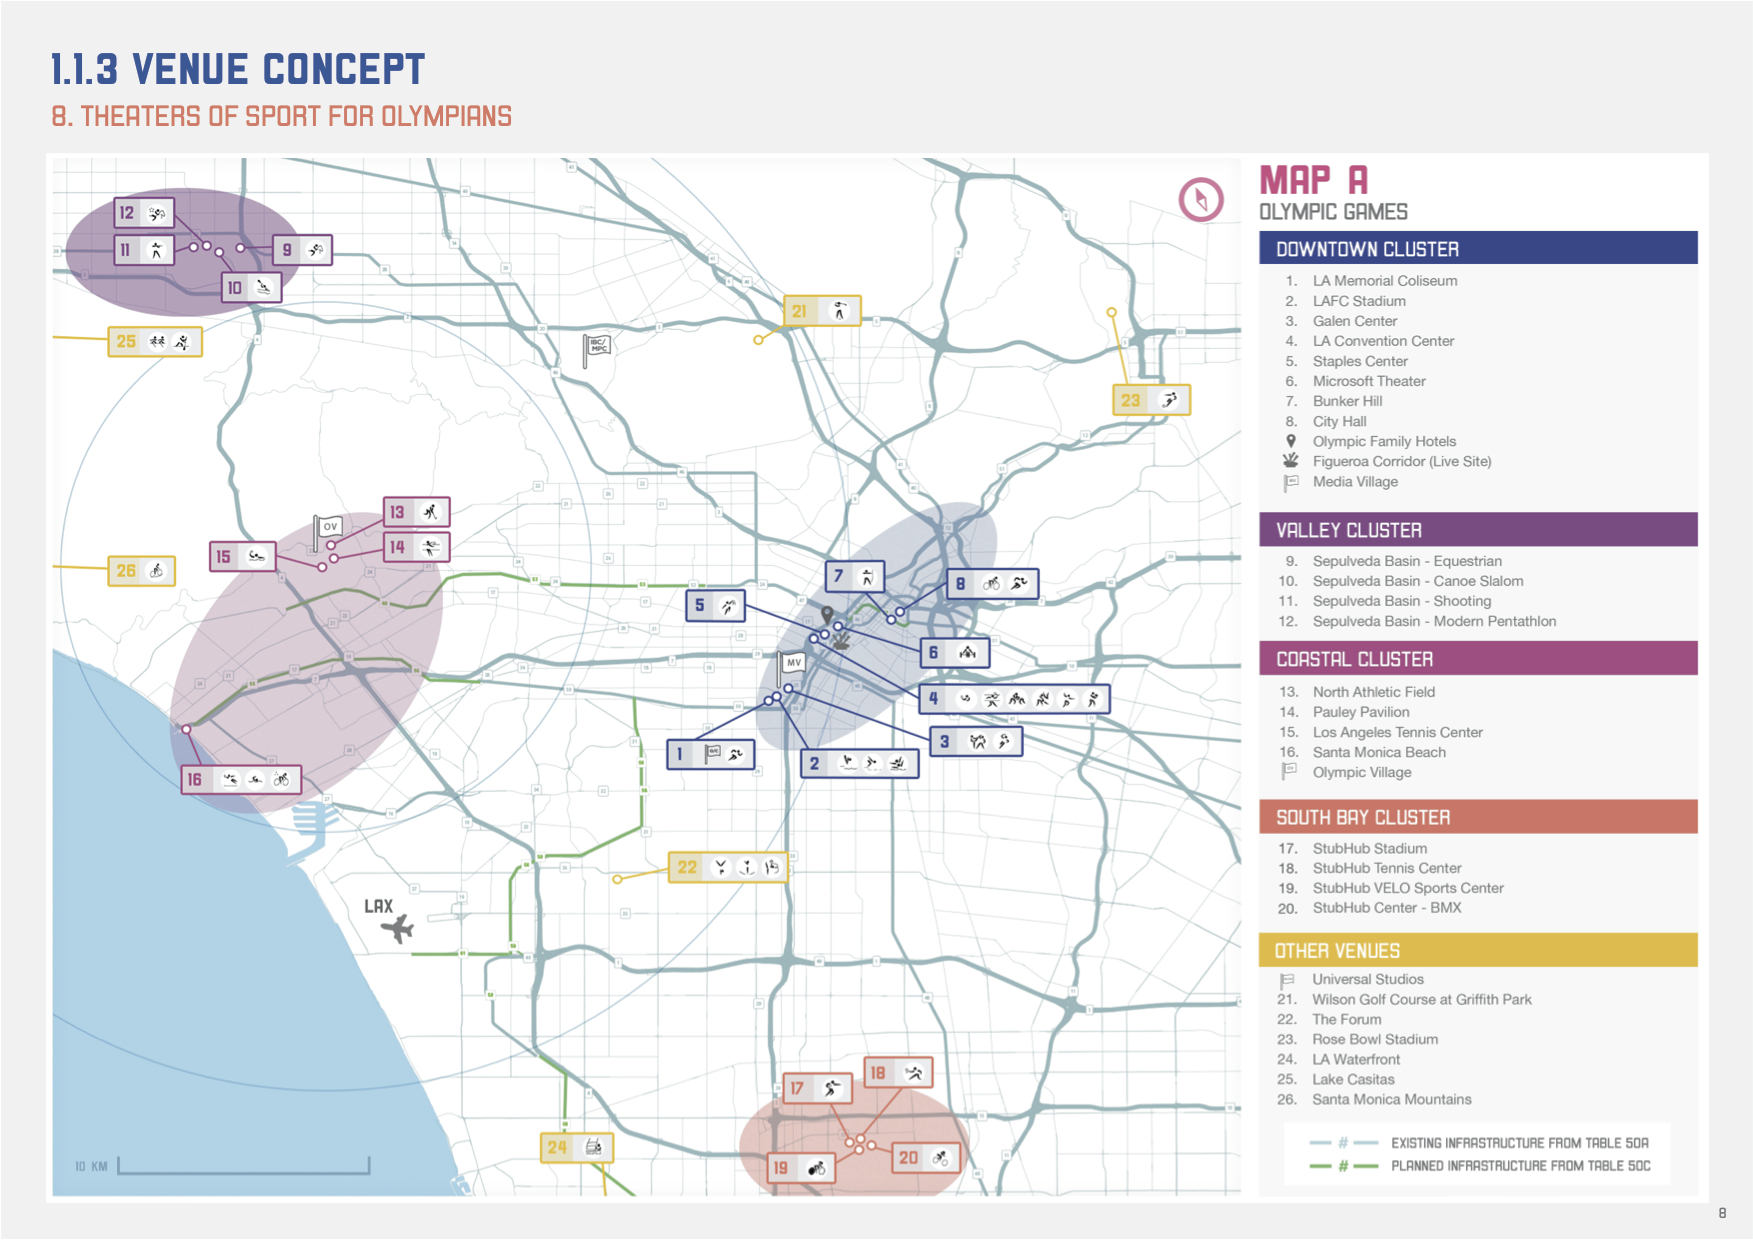 Lafc Subway Map.The 2024 Los Angeles Summer Olympics Bid And Metro The Source